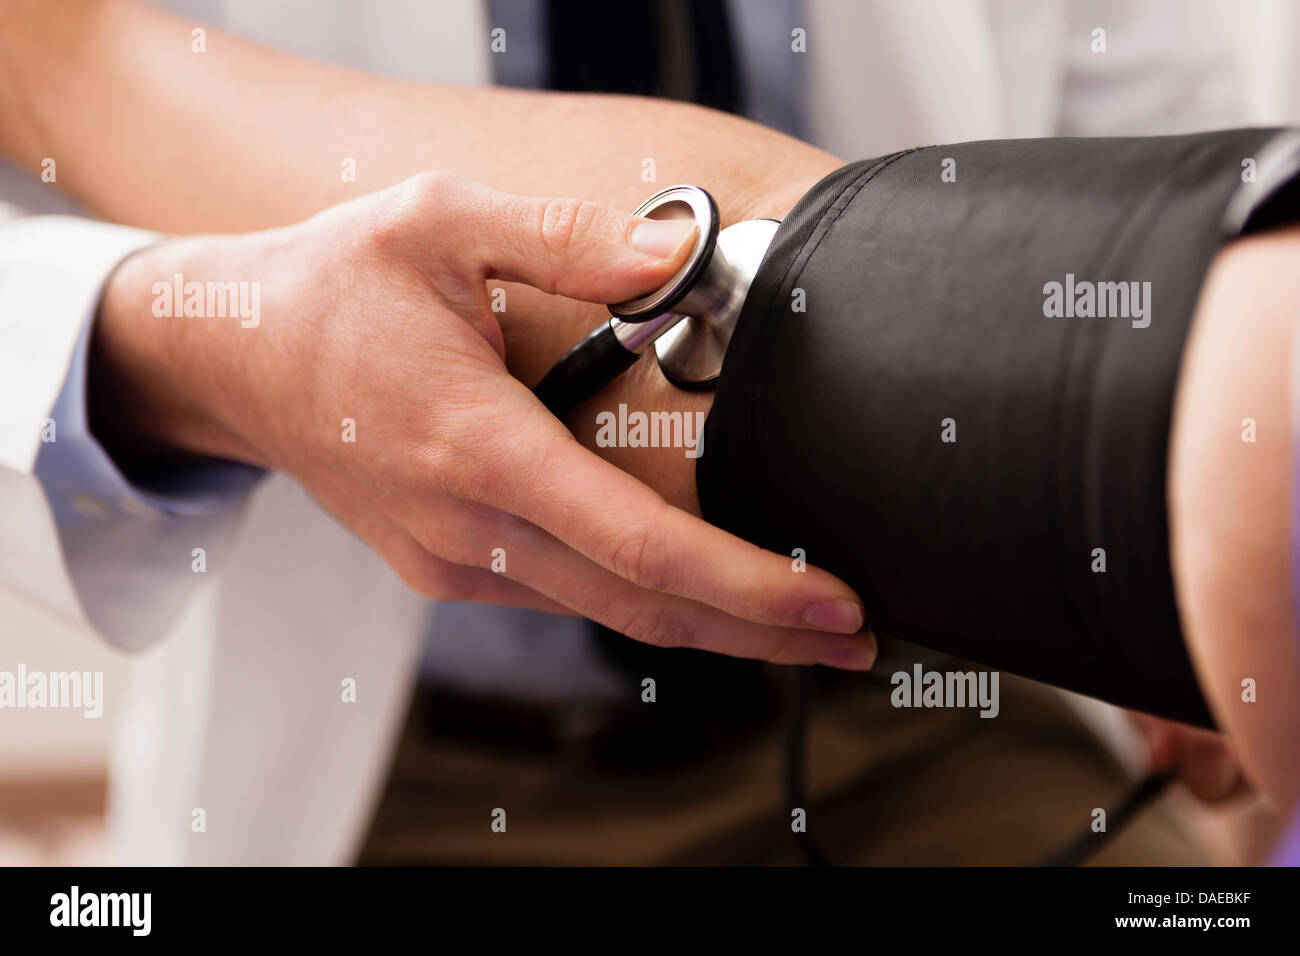 Mid adult doctor using stethoscope and blood pressure cuff on patient, close up - Stock Image